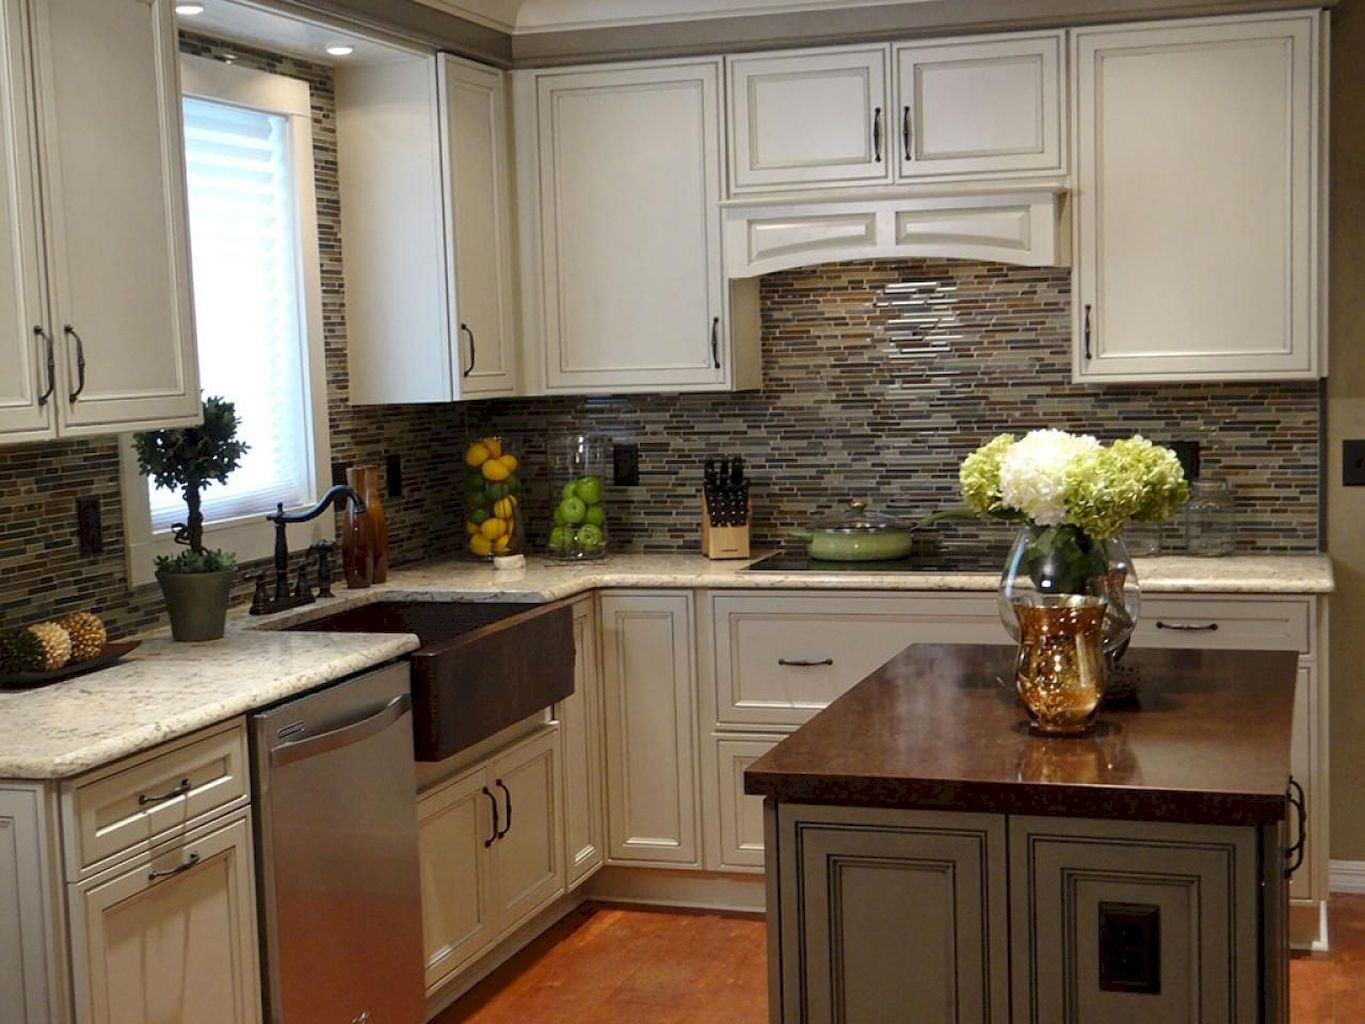 Kitchen Plan And Design For Small Room (85)